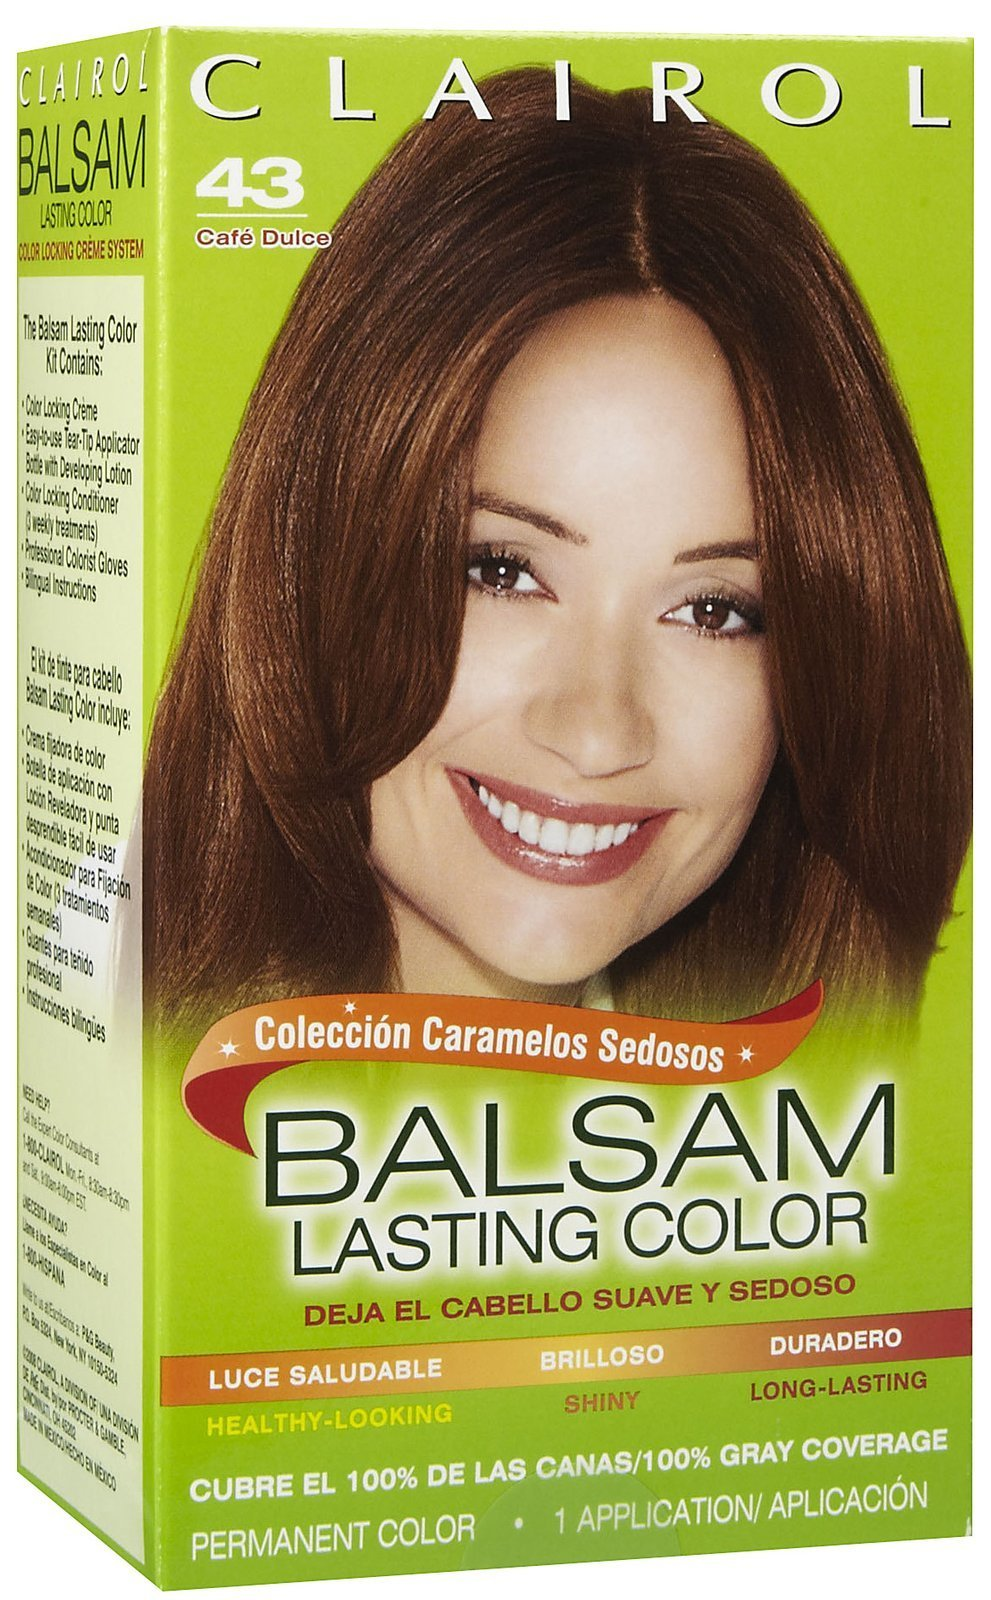 The Best Clairol Balsam Color Clairol Balsam Color Haircolor Pictures